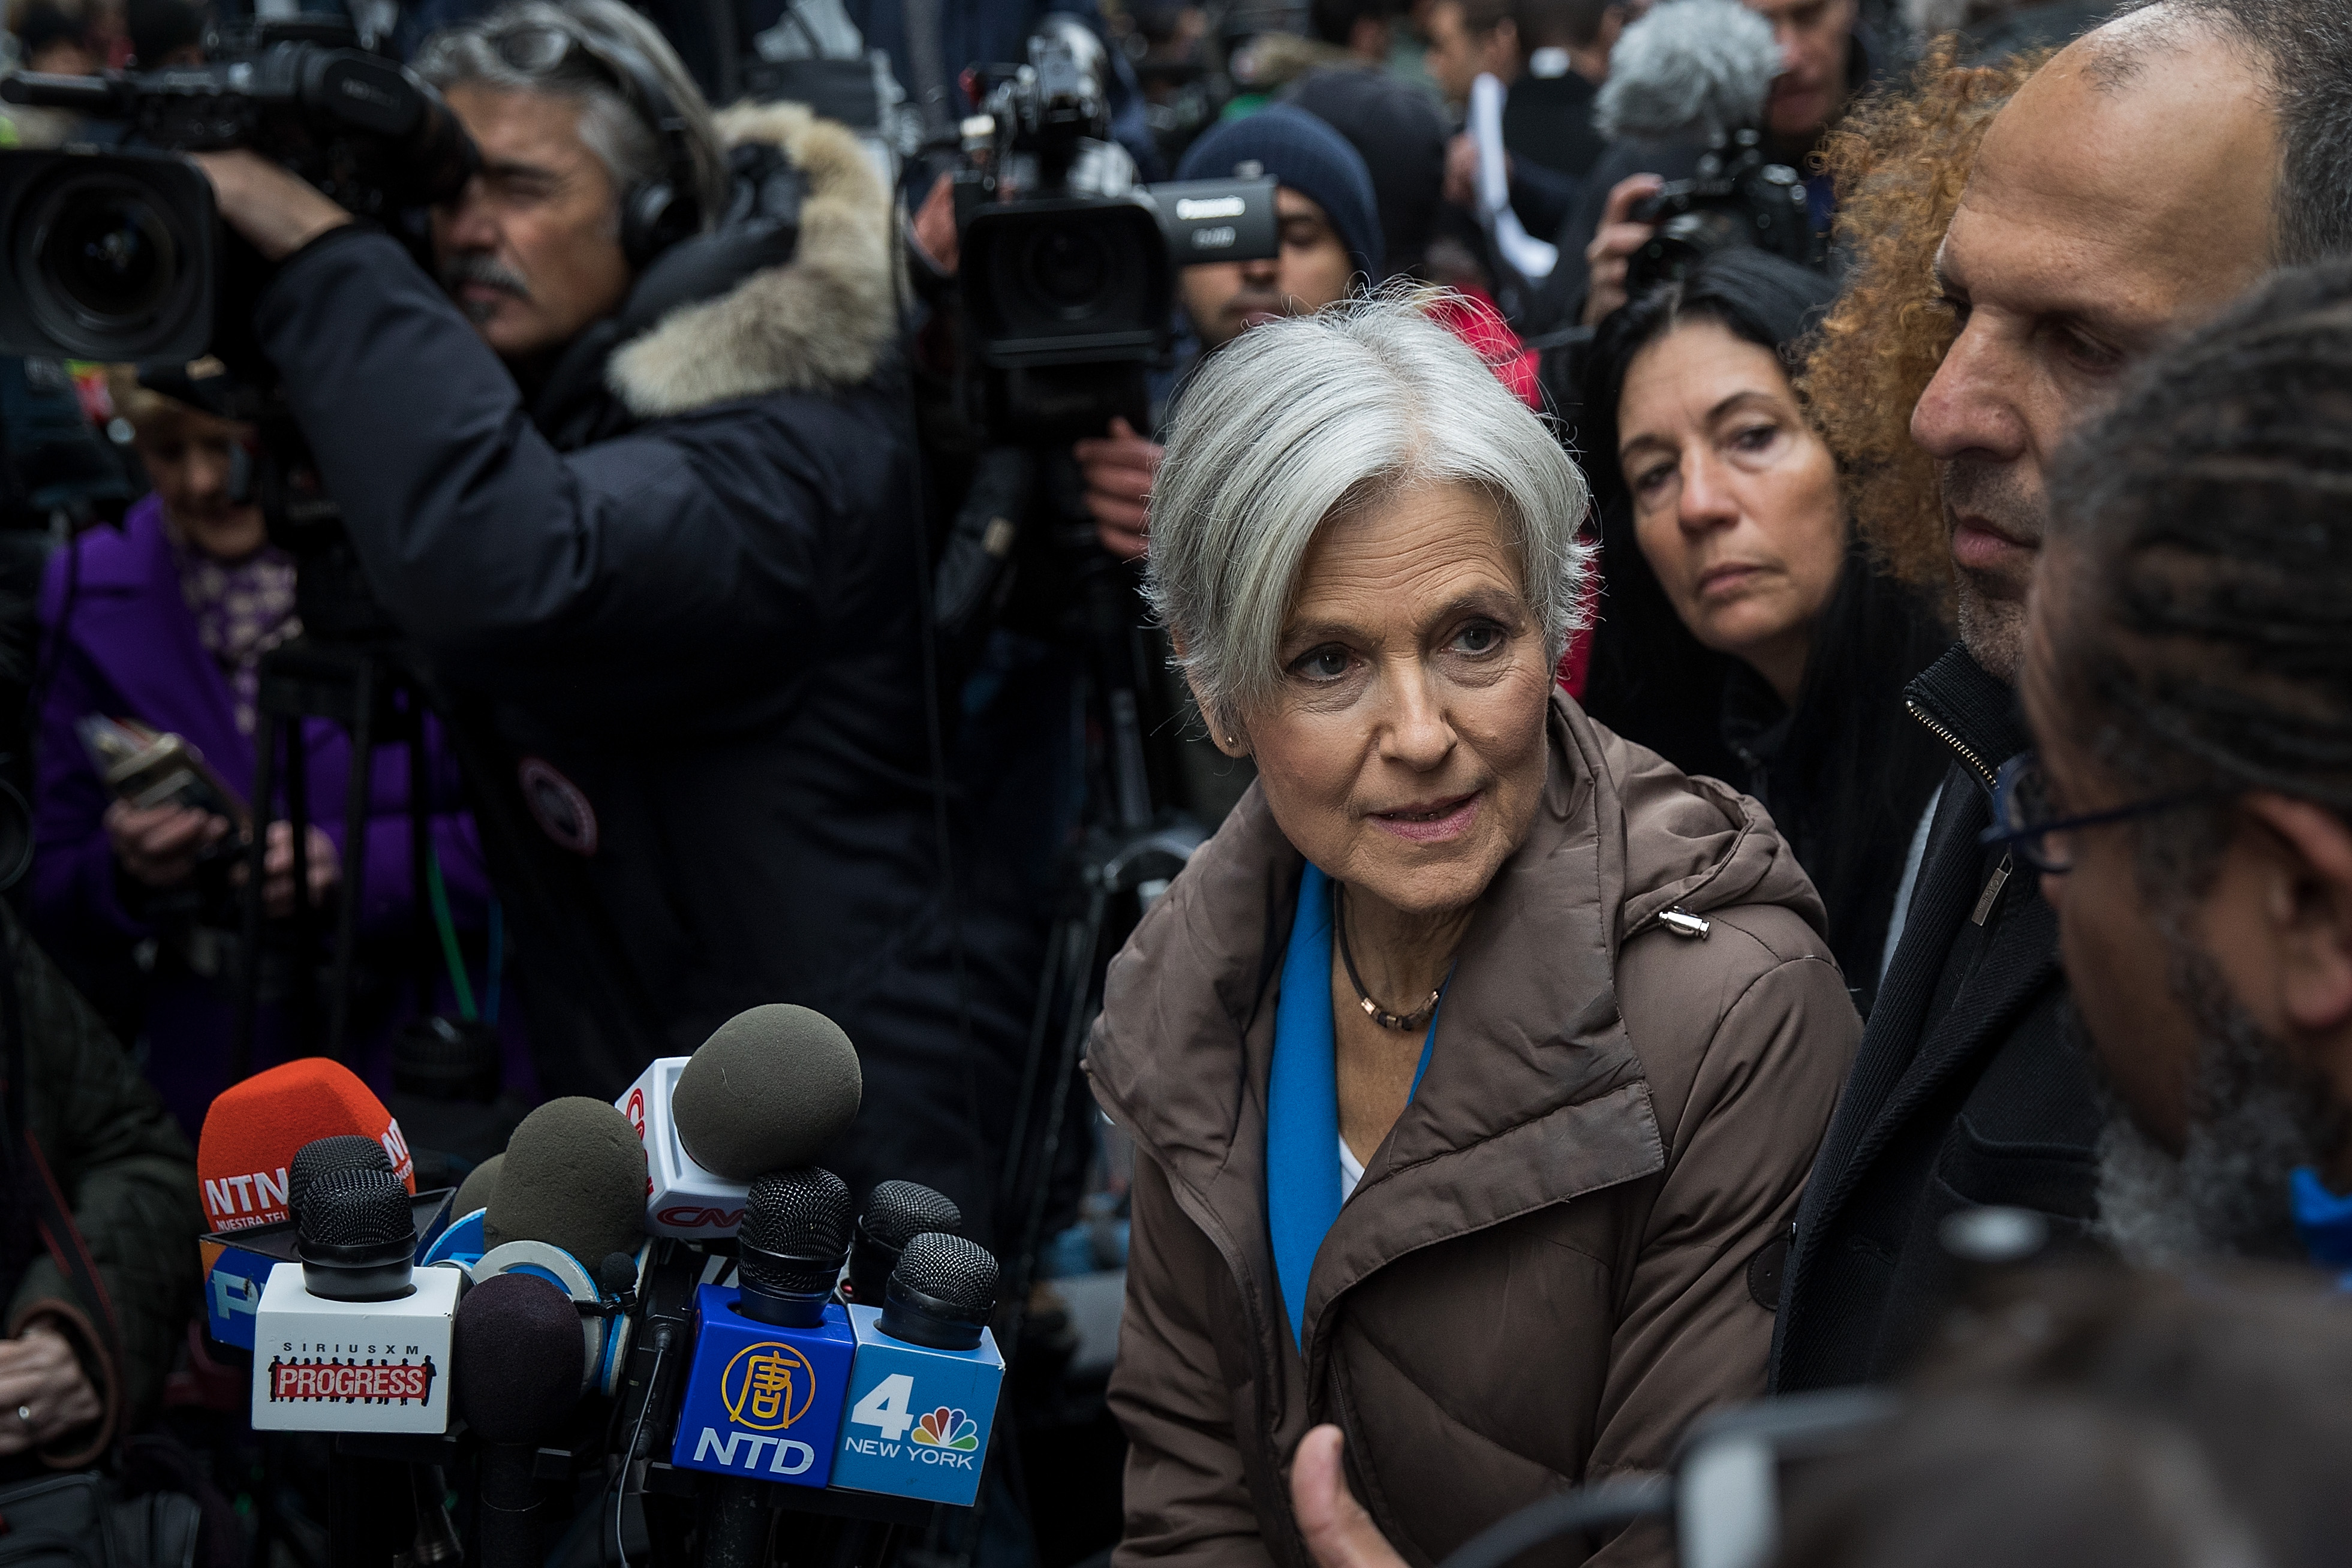 Green Party presidential candidate Jill Stein speaks at a news conference on Fifth Avenue across the street from Trump Tower December 5, 2016 in New York City.